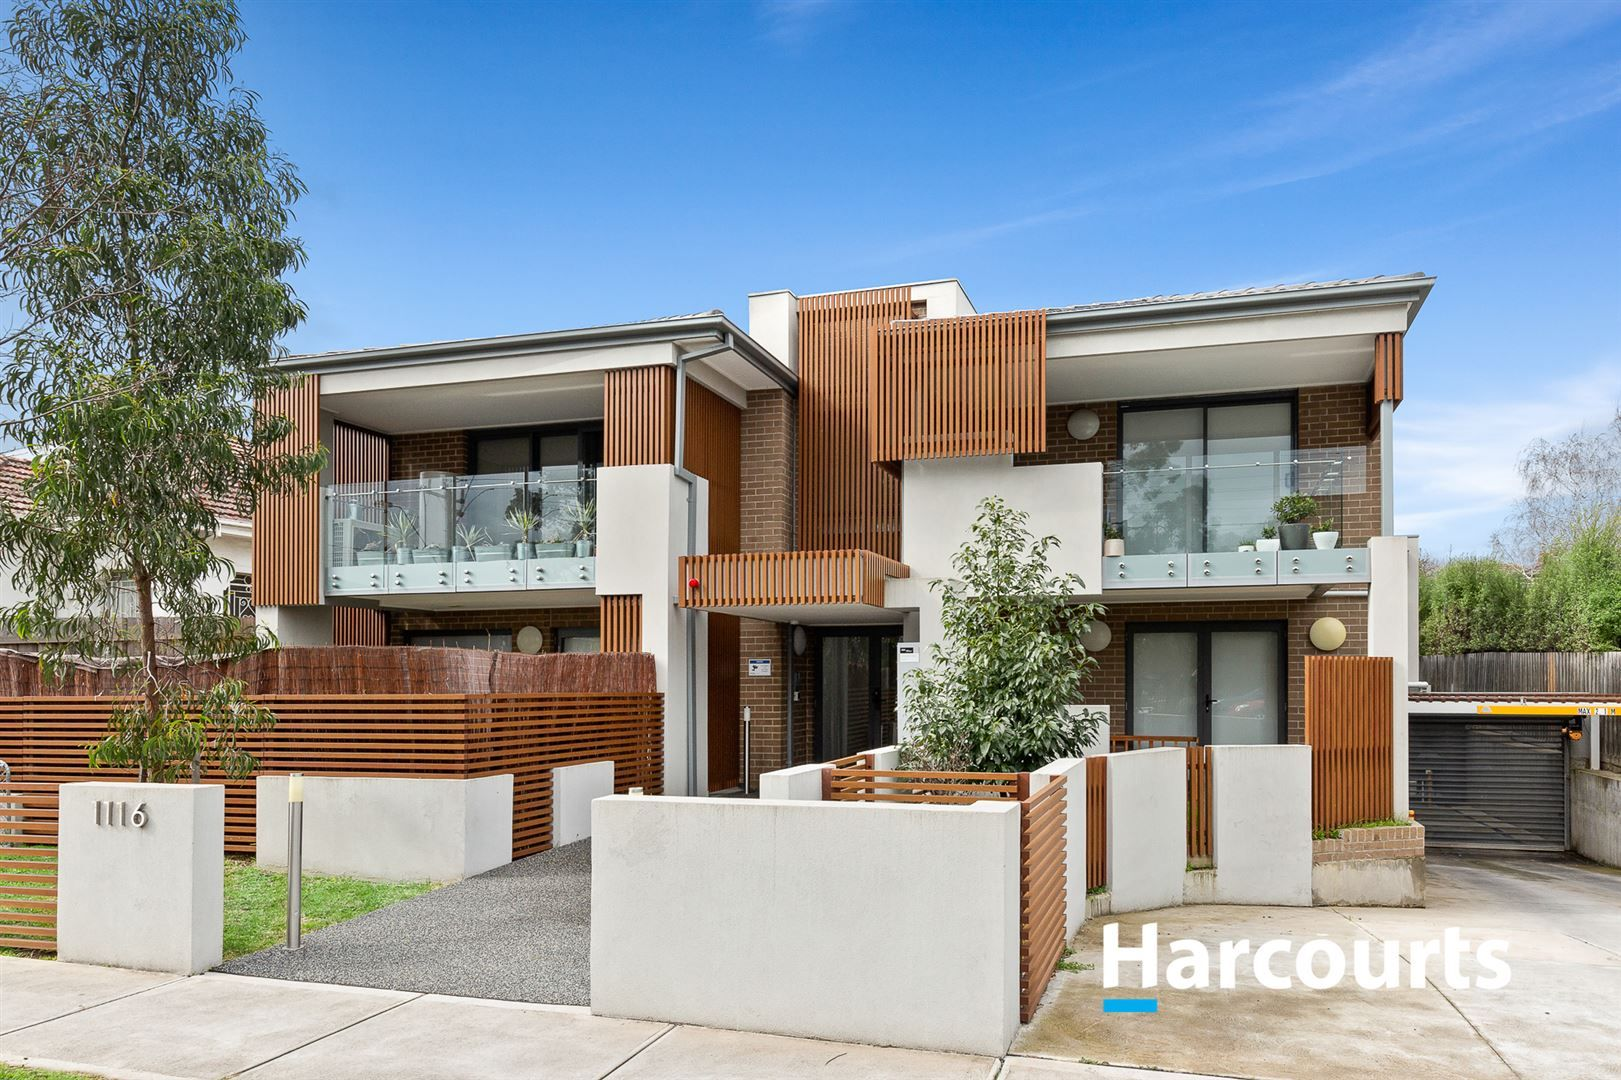 5/1116 Burke Road, Balwyn North VIC 3104, Image 0